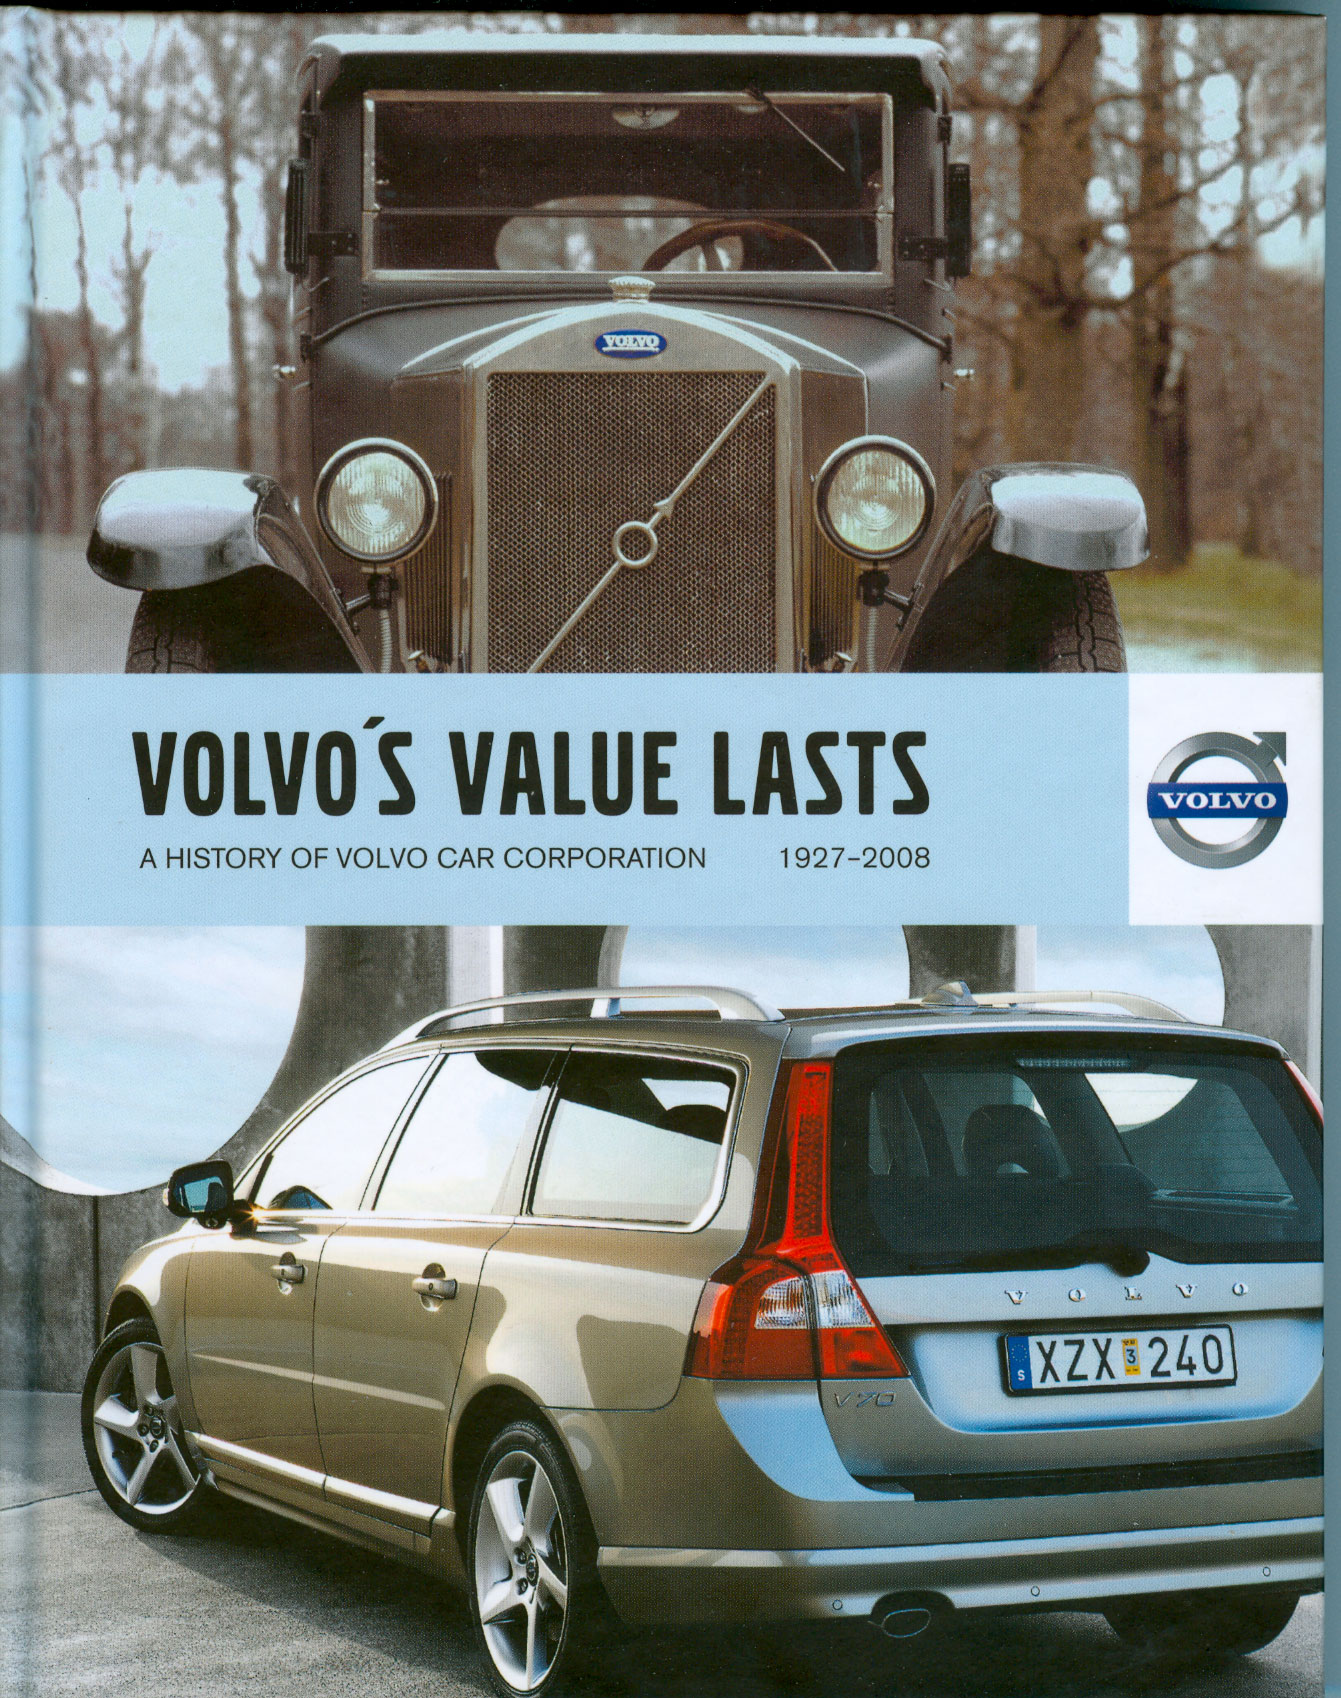 Volvo's value last